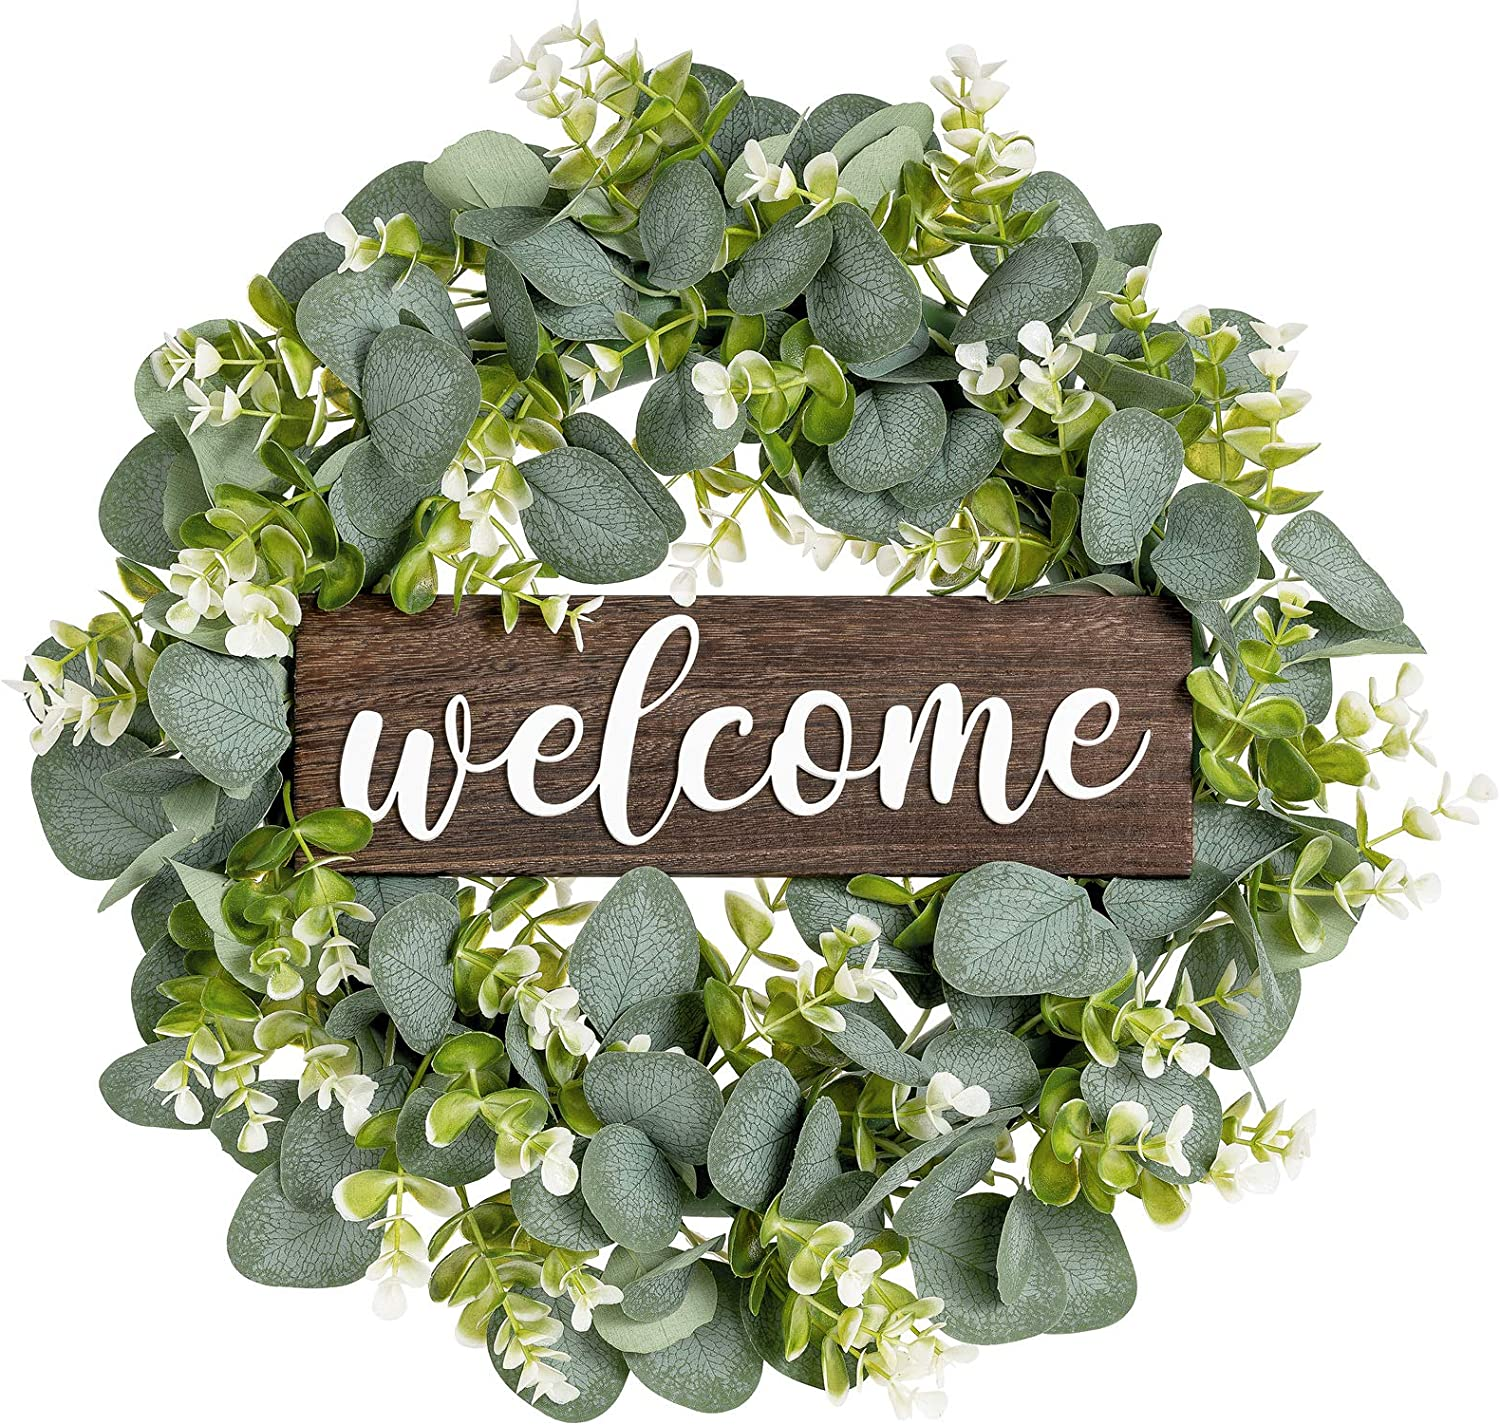 Dahey Welcome Sign with Wreaths Rustic Front Door Decor Wood Hanging Sign with Artificial Eucalyptus 16inch Farmhouse Porch Decorations for Home Wedding Mother,s Day Gift, Medium